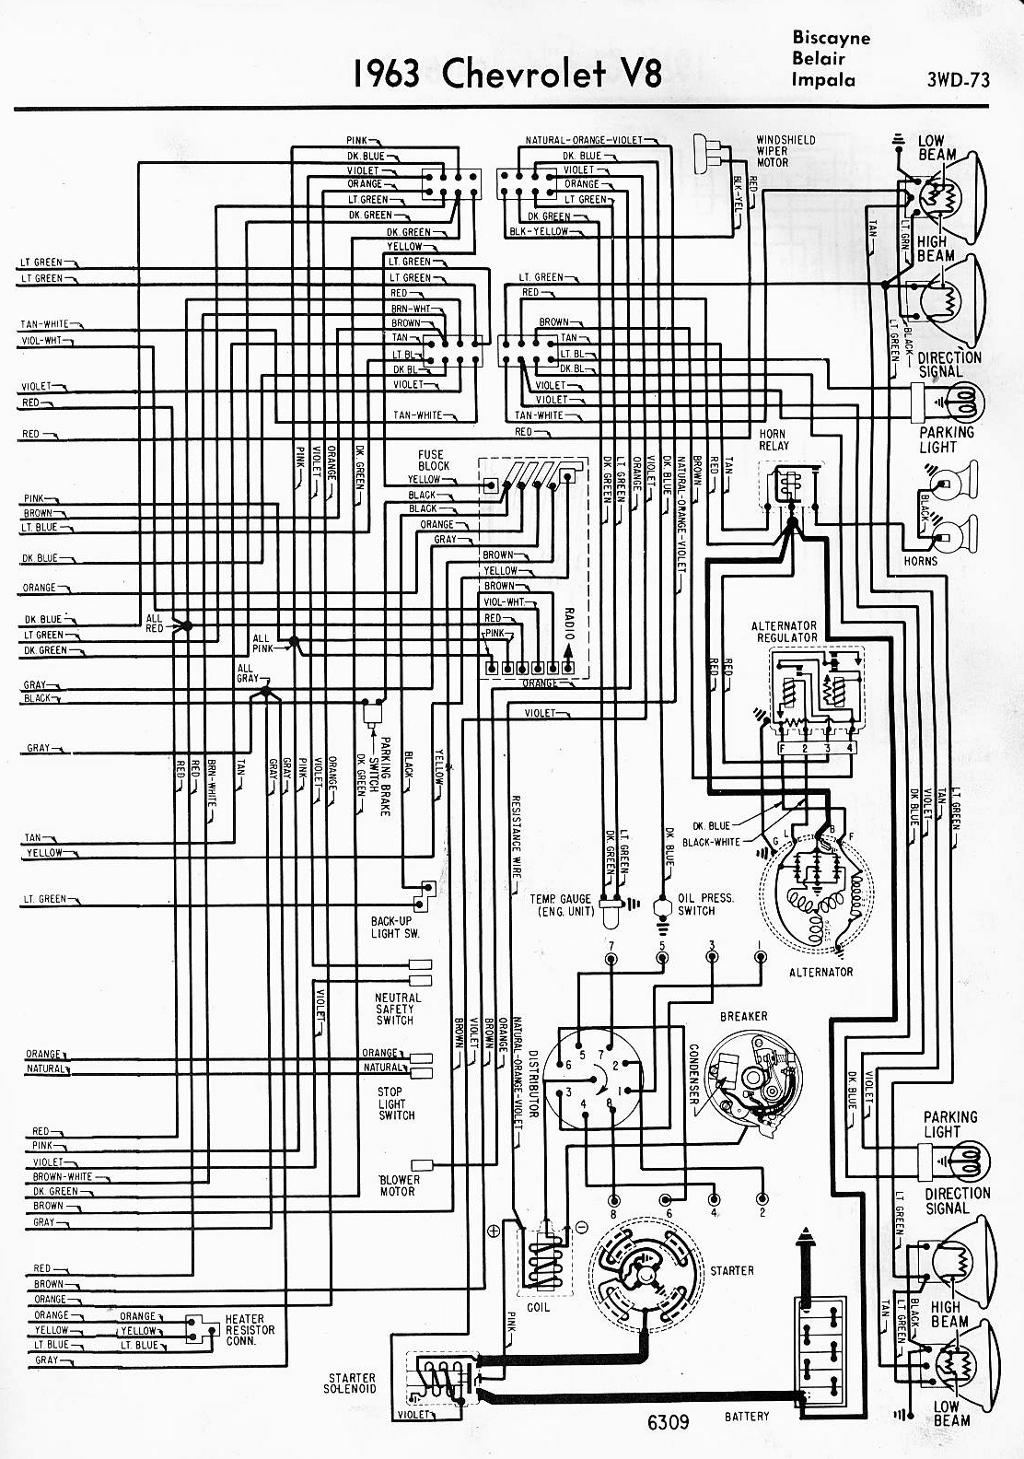 1965 Impala Engine Diagram How Does An Engine Work Diagram Light Switch Tukune Jeanjaures37 Fr